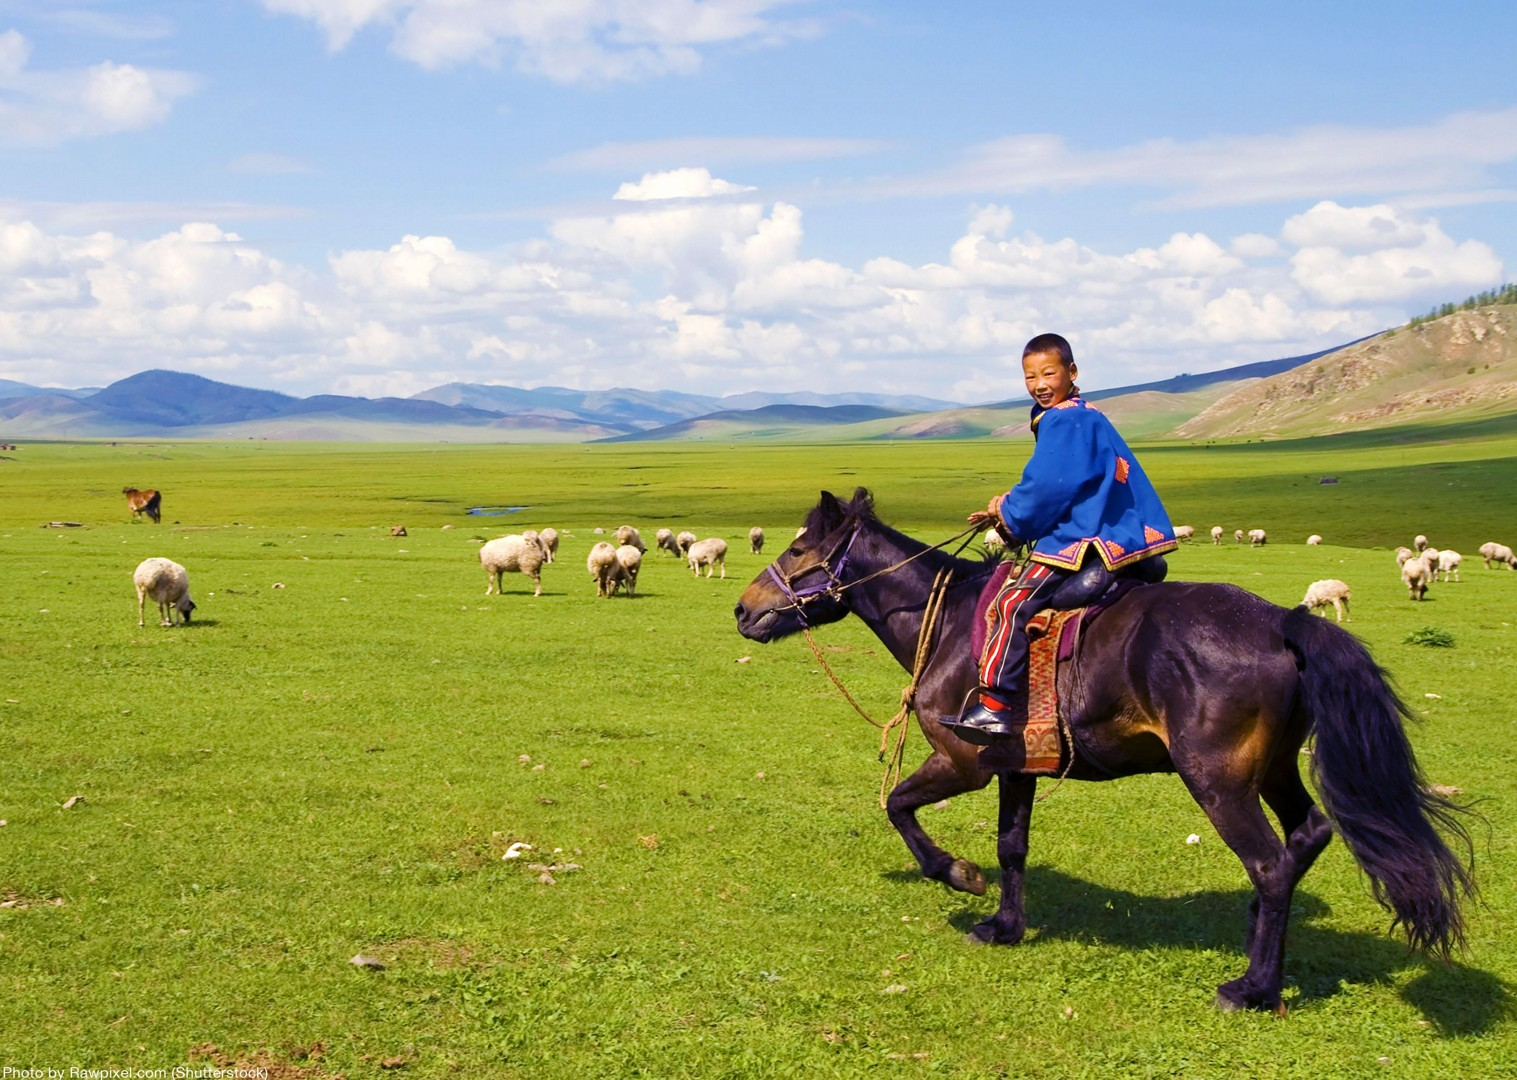 cycling-adventure-holiday-mongolia-scenic.jpg - NEW! Mongolia - Route of the Nomads - Cycling Adventures